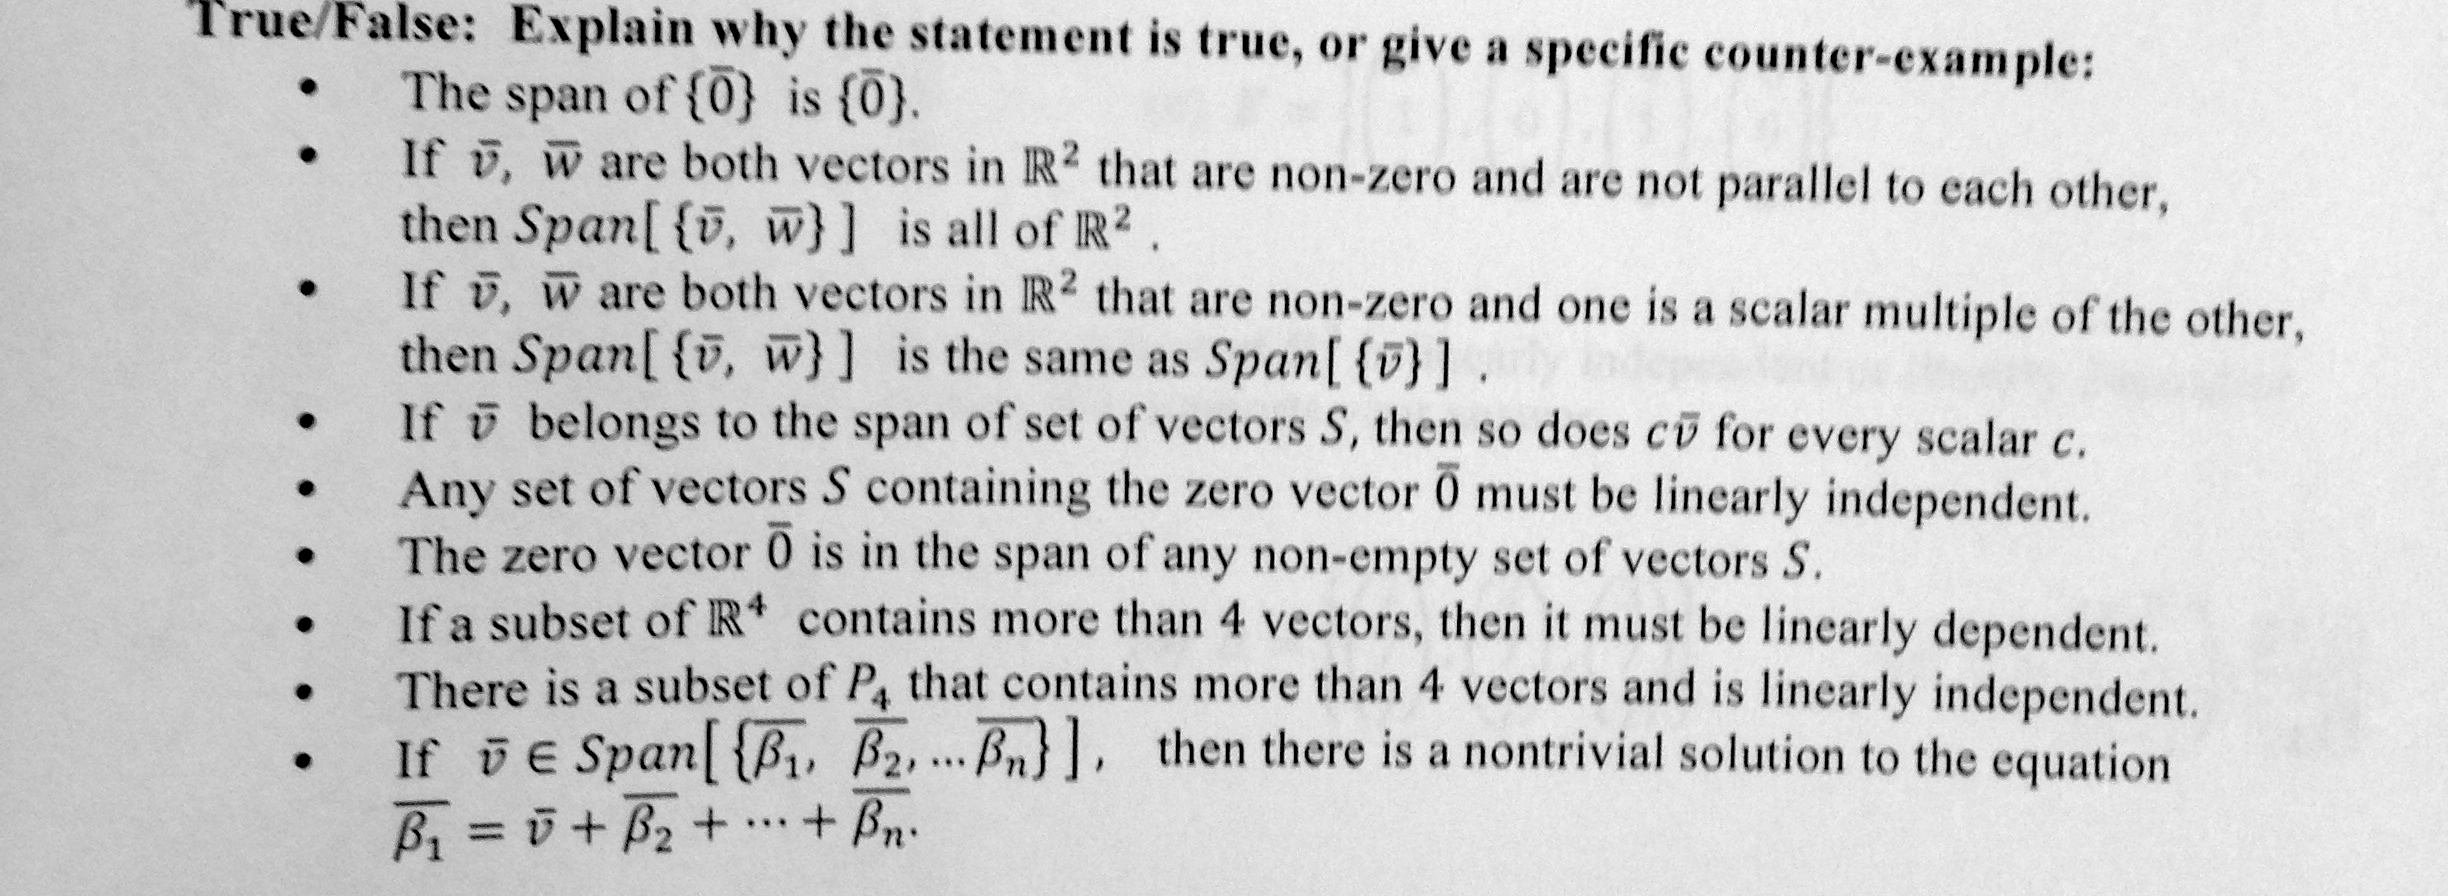 Parallel vectors are scalar multiples